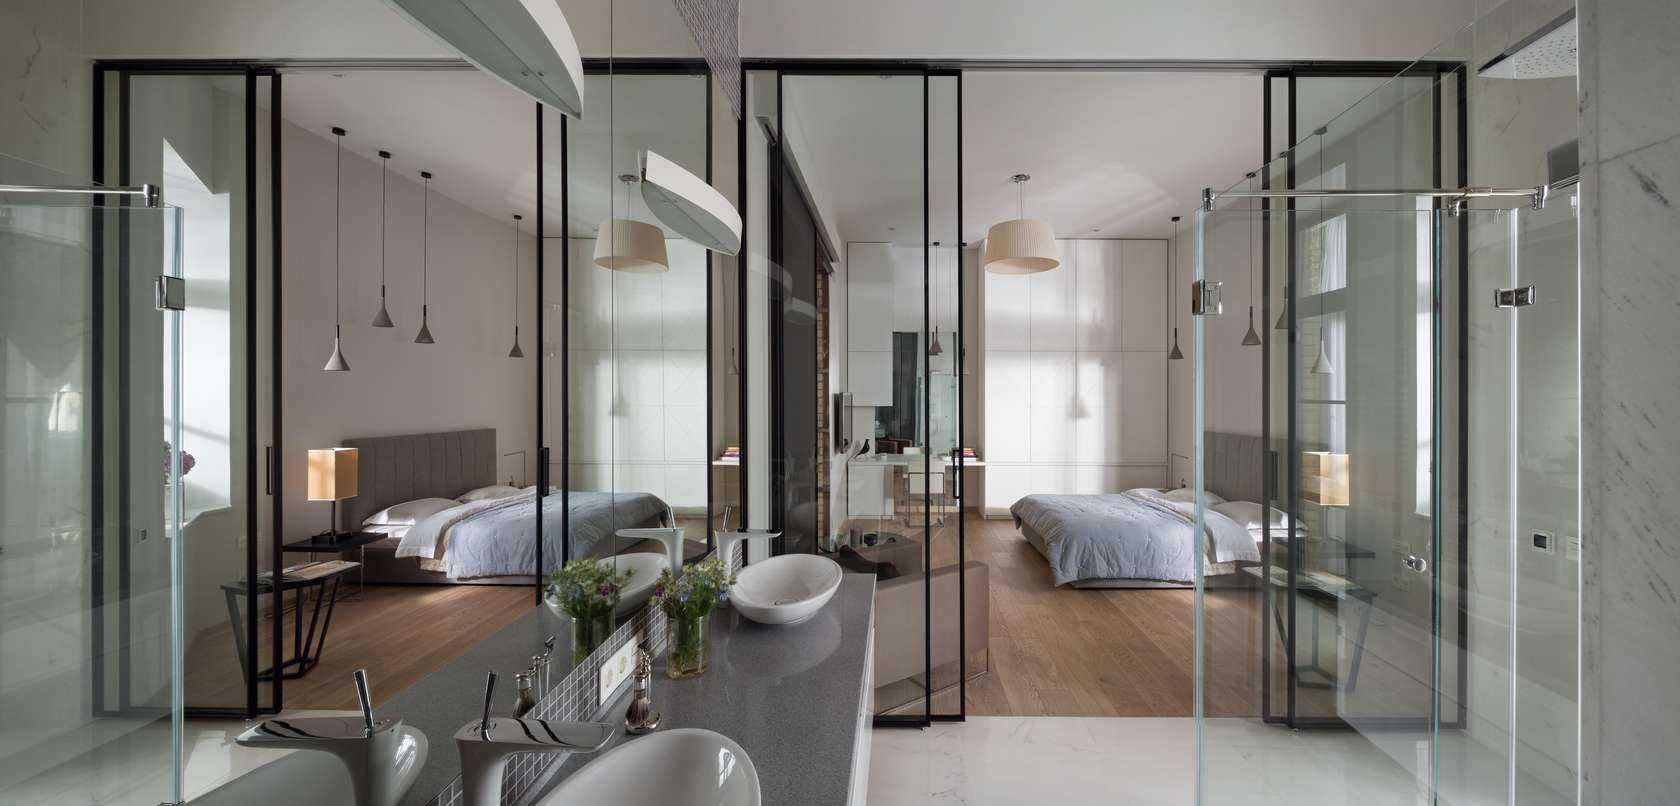 Loft Style Window Mirror Sergey Makhno Architizer